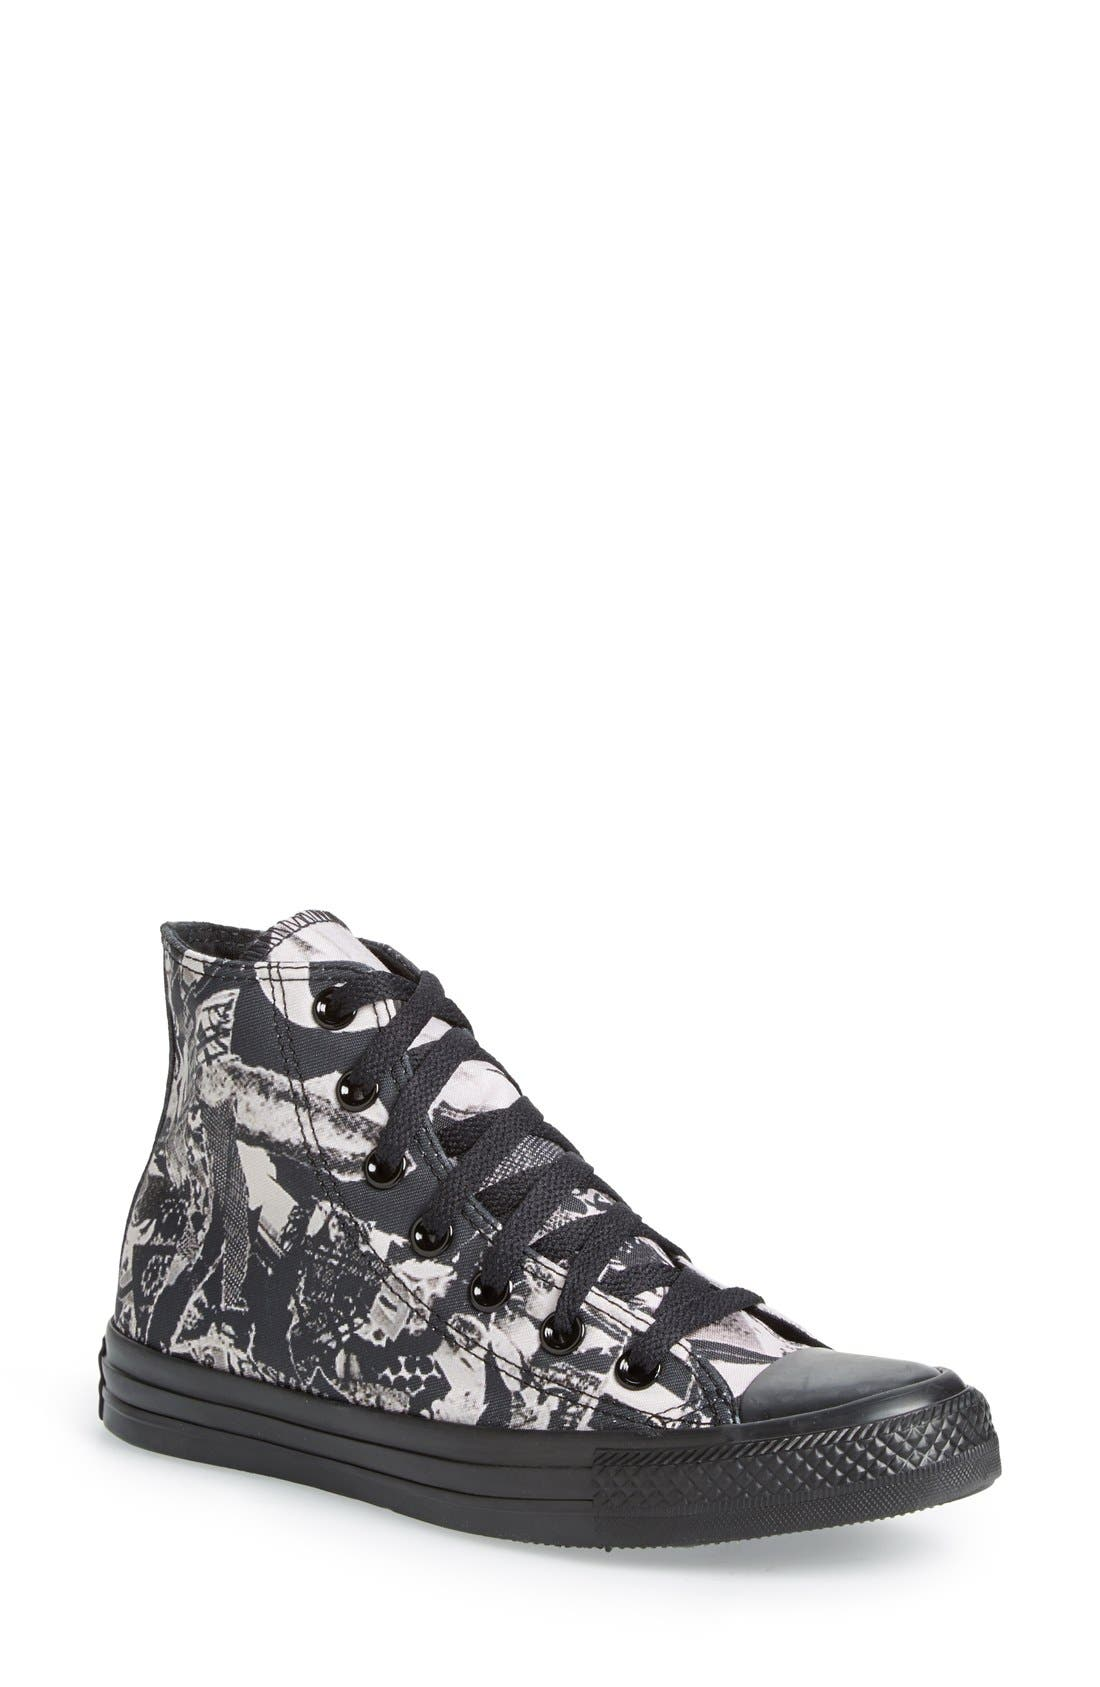 Alternate Image 1 Selected - Converse Chuck Taylor® All Star® Print High Top Sneaker (Women)